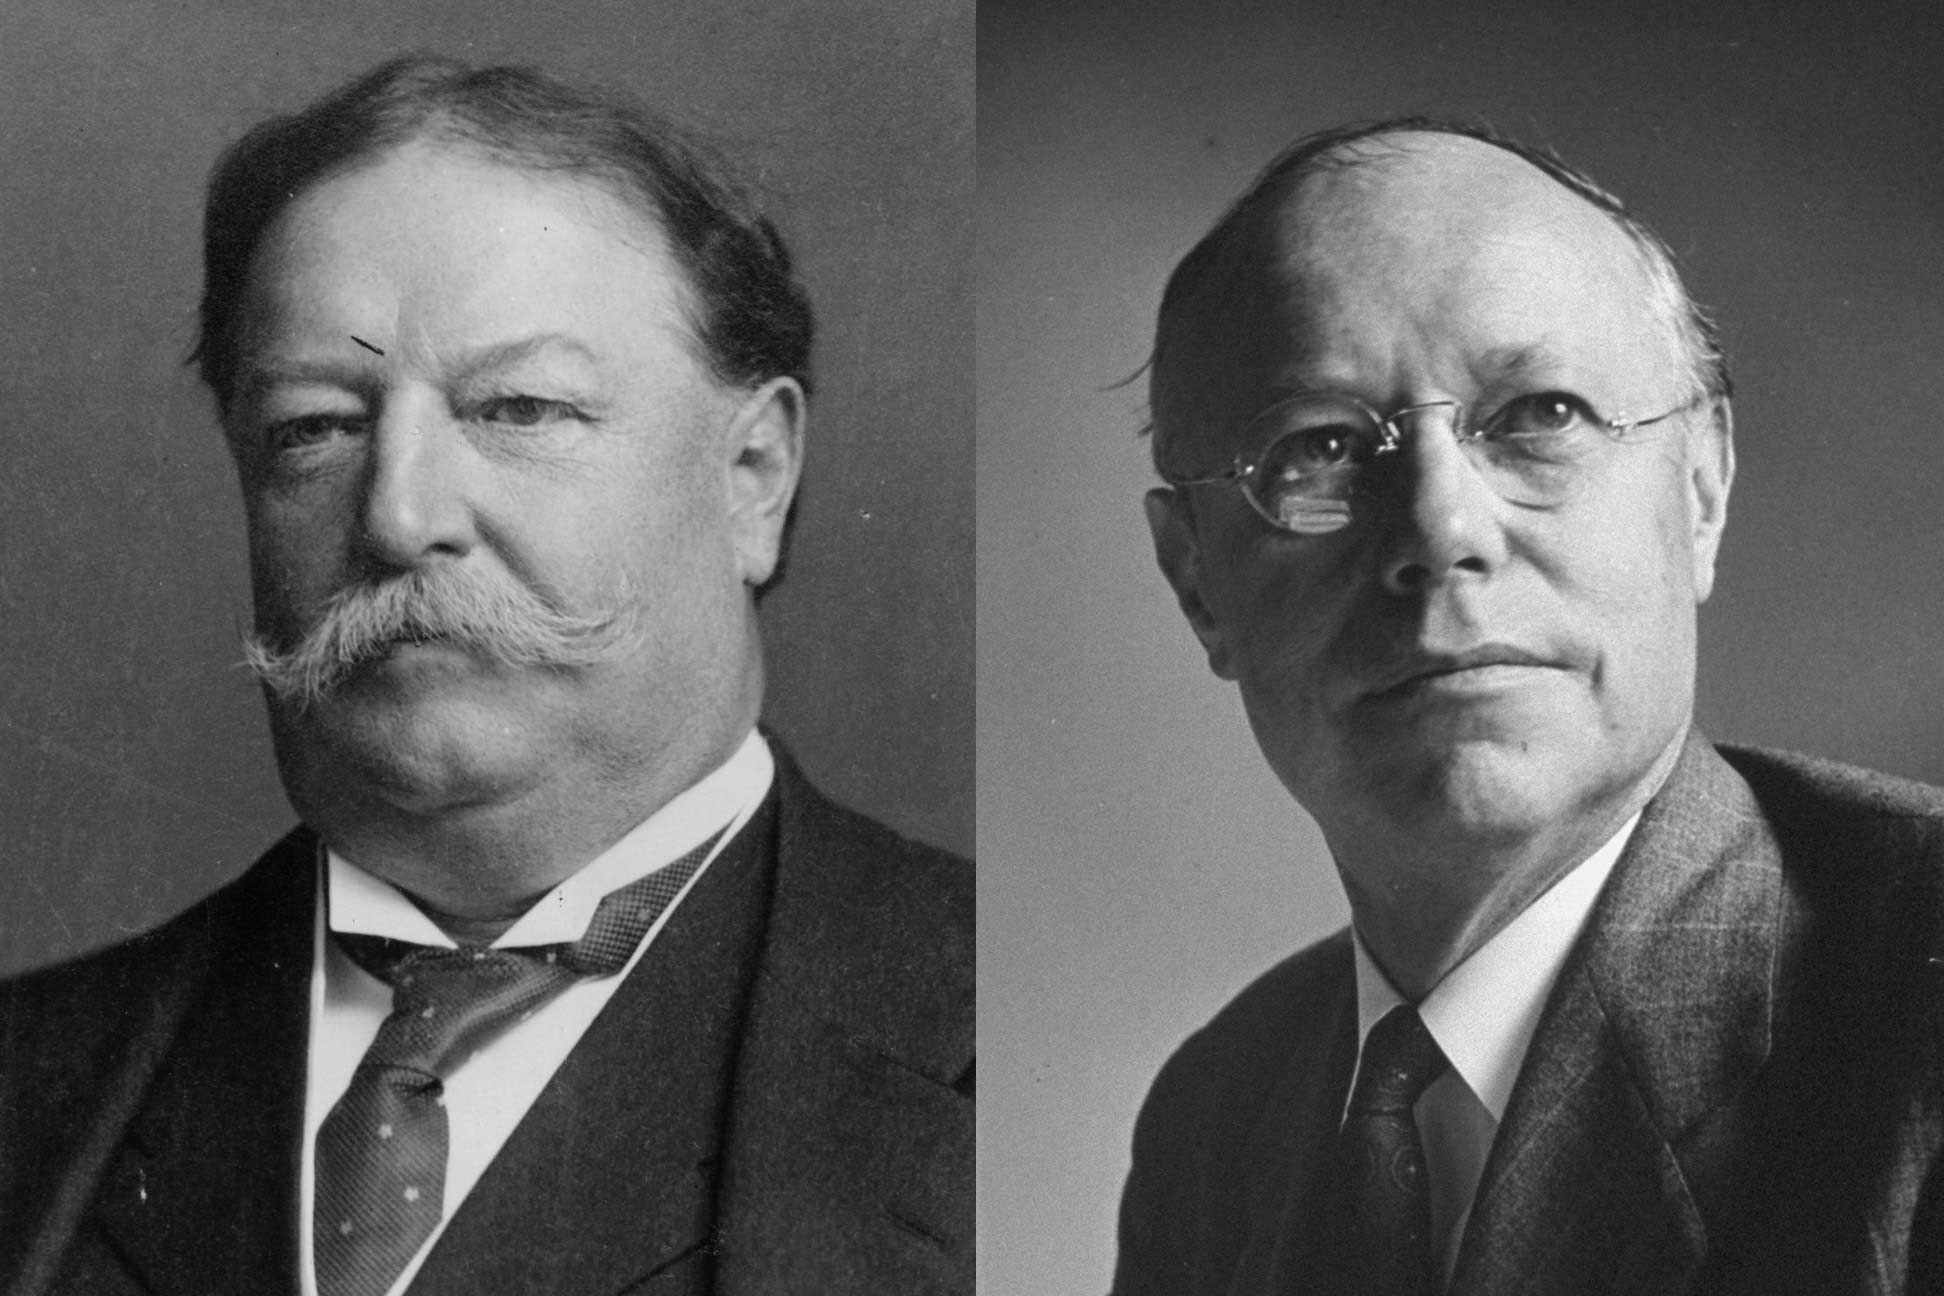 The Taft family includes prominent Americans extending back to the colonial era. William Howard Taft (left) was President from 1909 to 1913 and later appointed Chief Justice of the Supreme Court. His son Robert A. Taft (right) wielded extraordinary power and influence as a member of the U.S. Senate, where he served until his death in 1953.